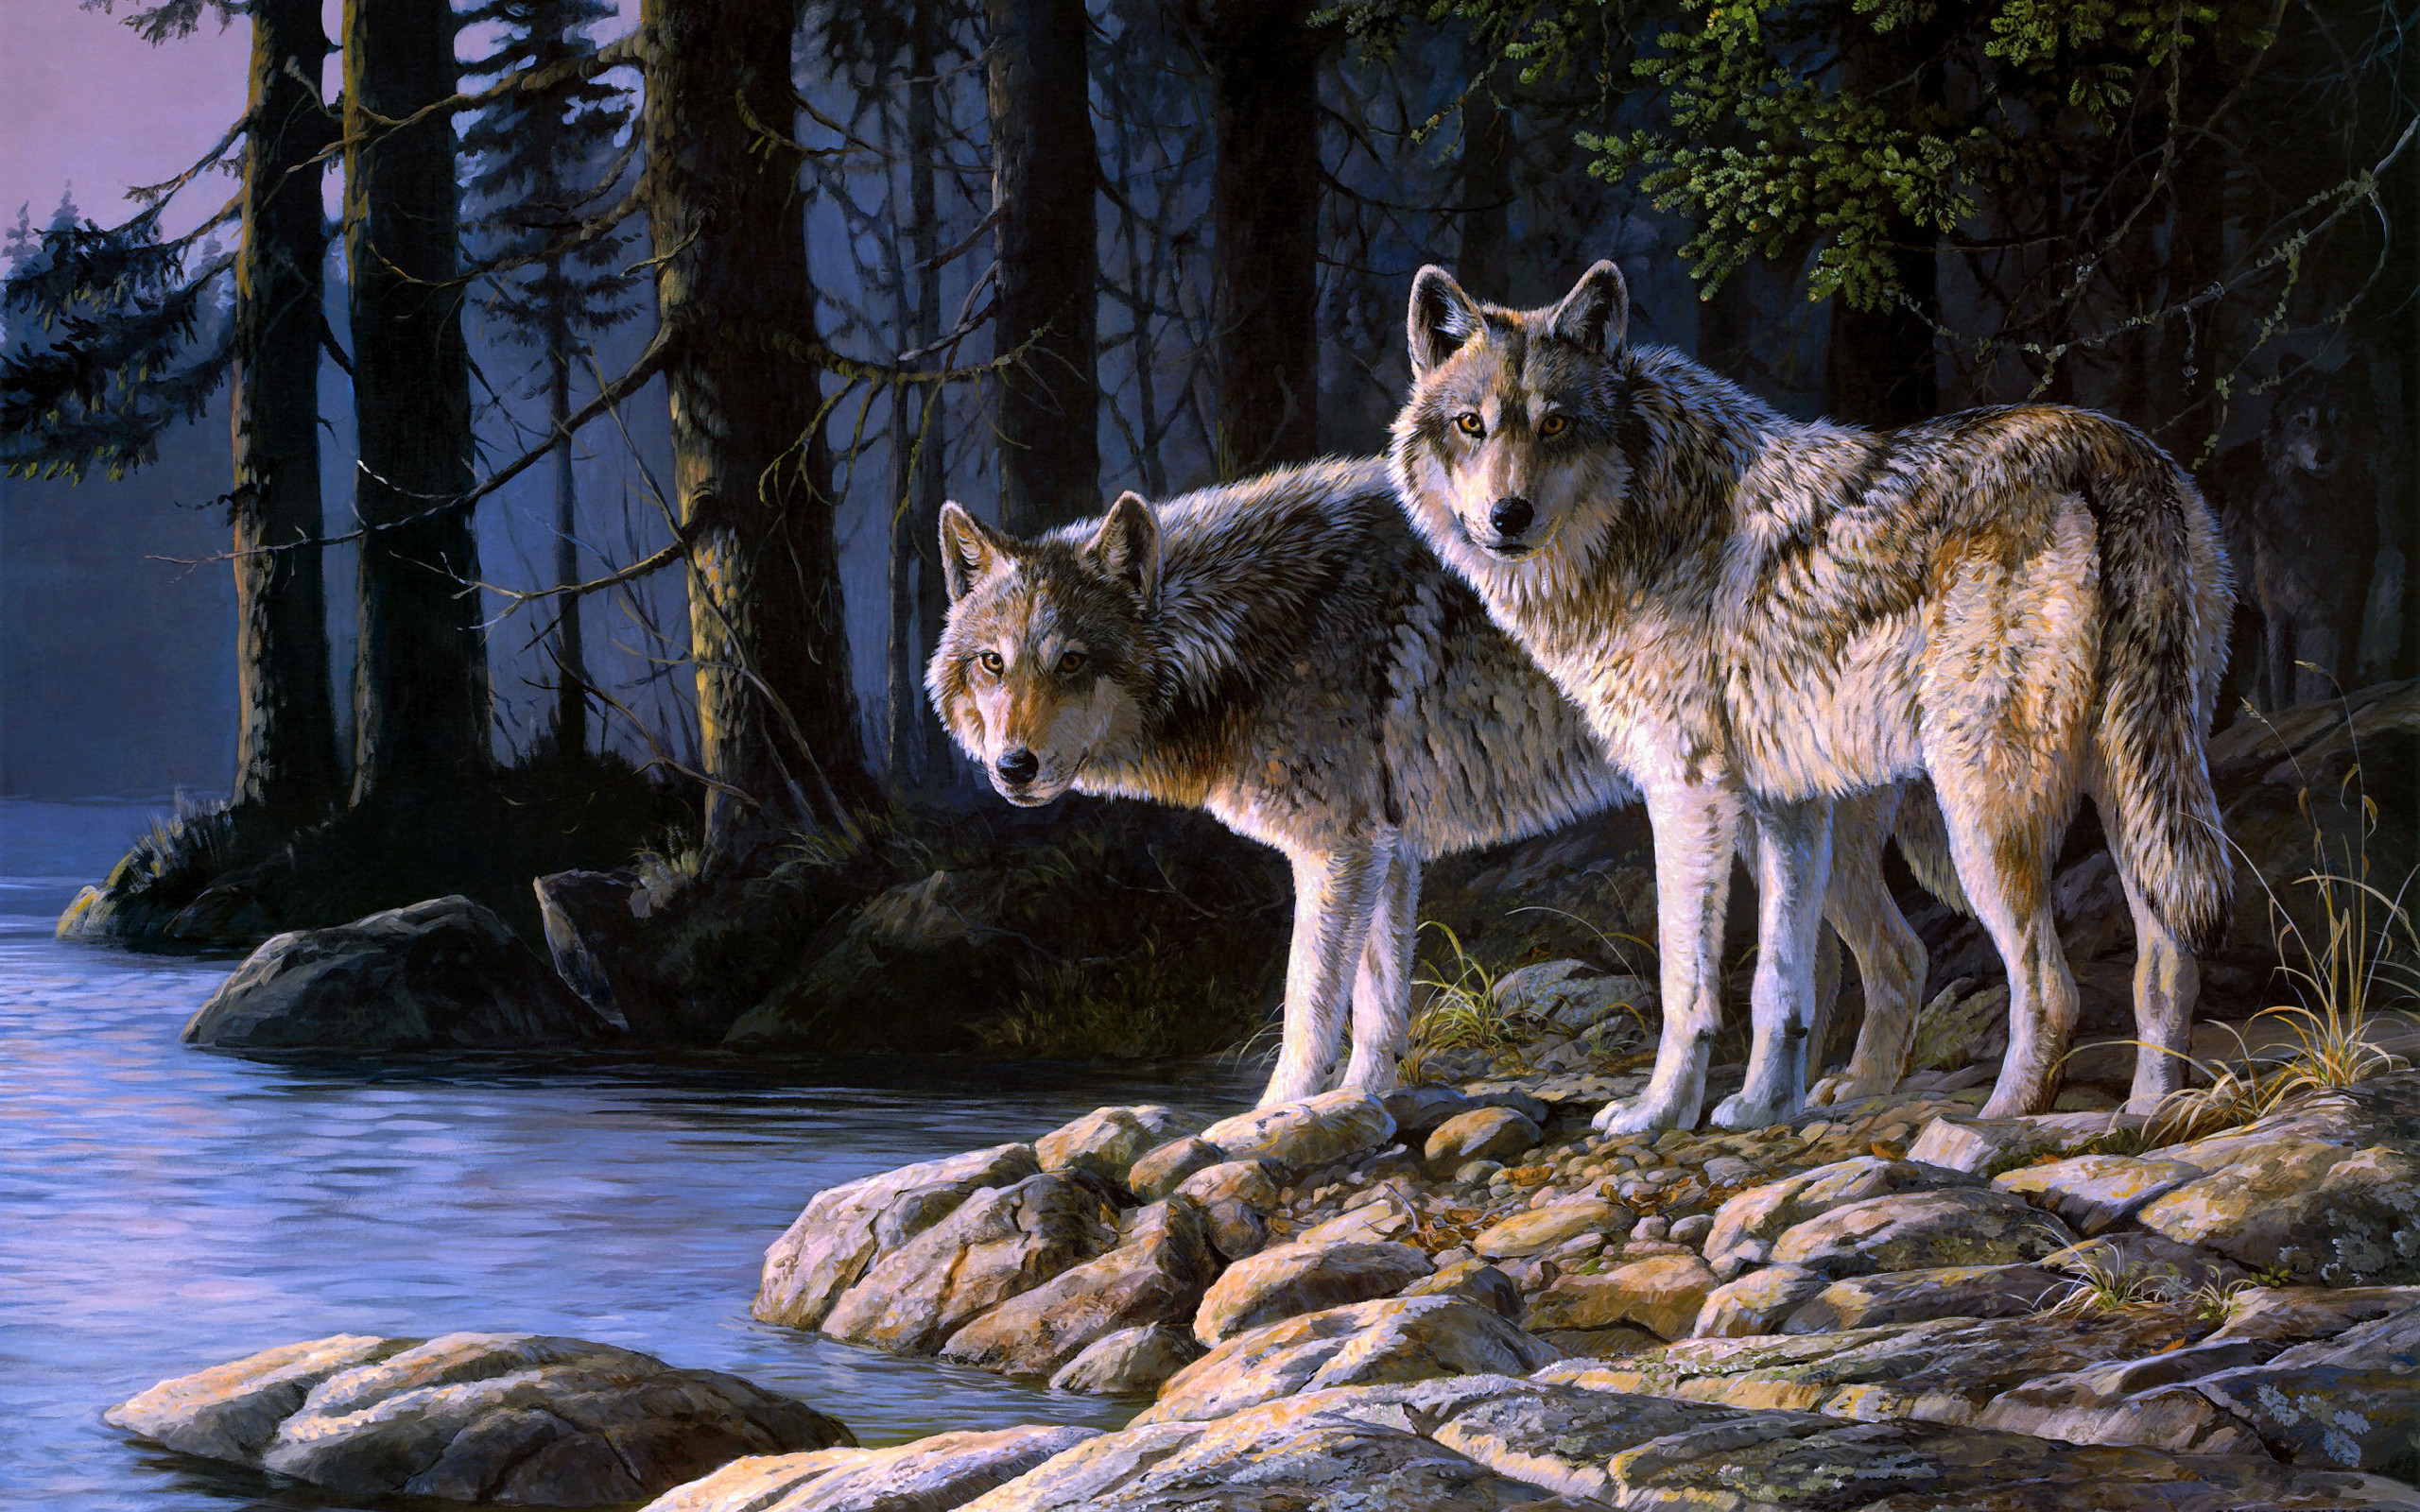 Wild Animal Wolf Wallpapers Hd 51074 Wallpaper: Howling Wolf Wallpaper (60+ Images